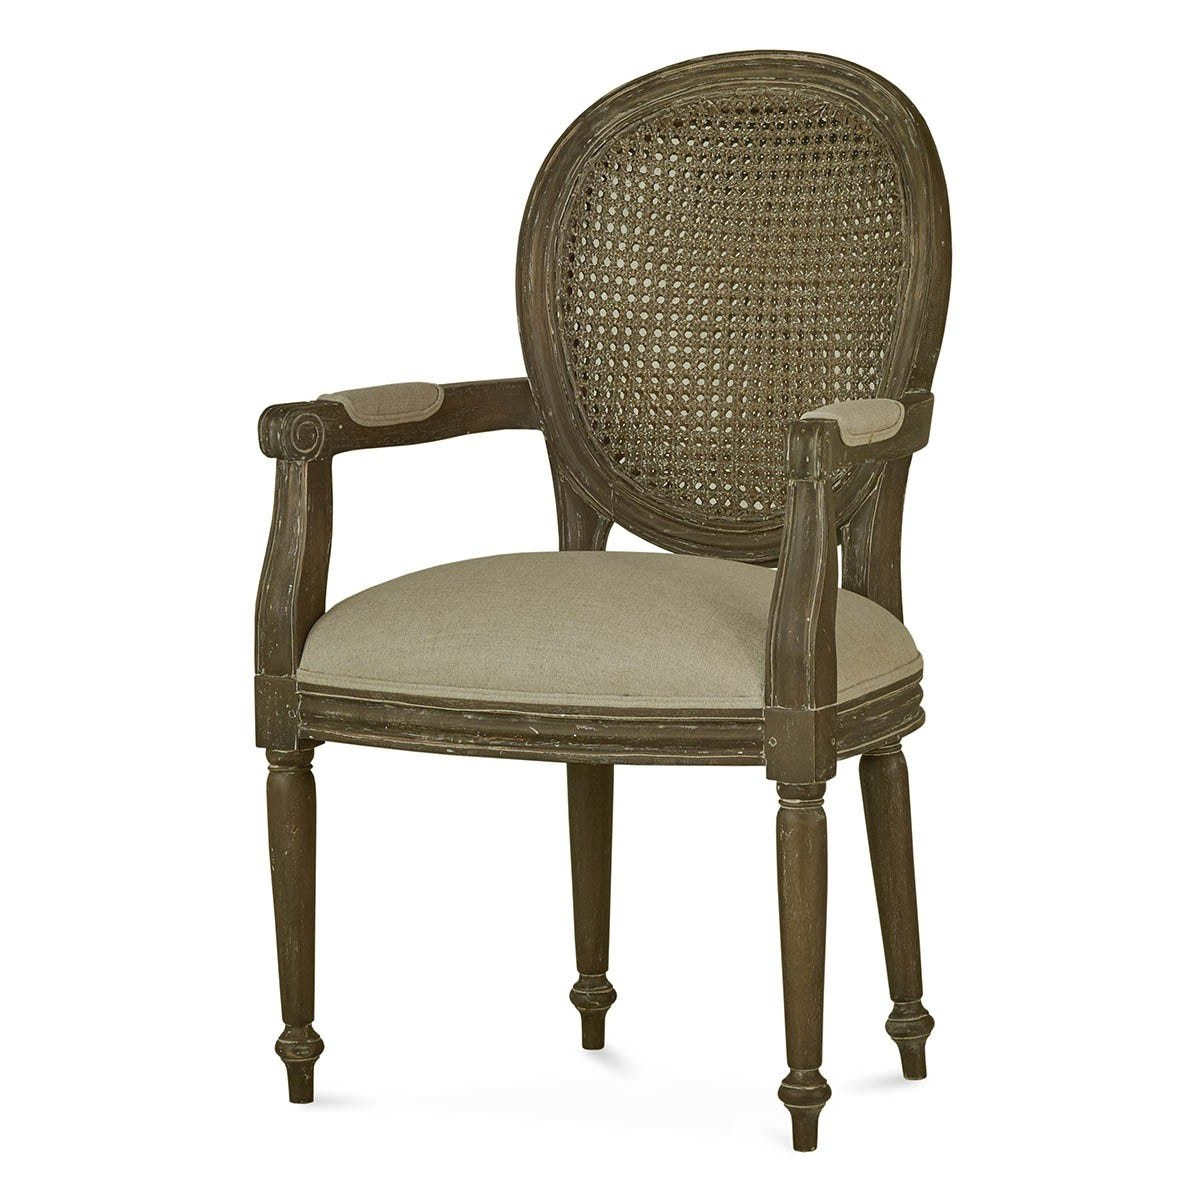 chair without back ergonomic cushion amazon bramble dining room tulip rattan arm flutted leg 26511 at pamaro shop furniture